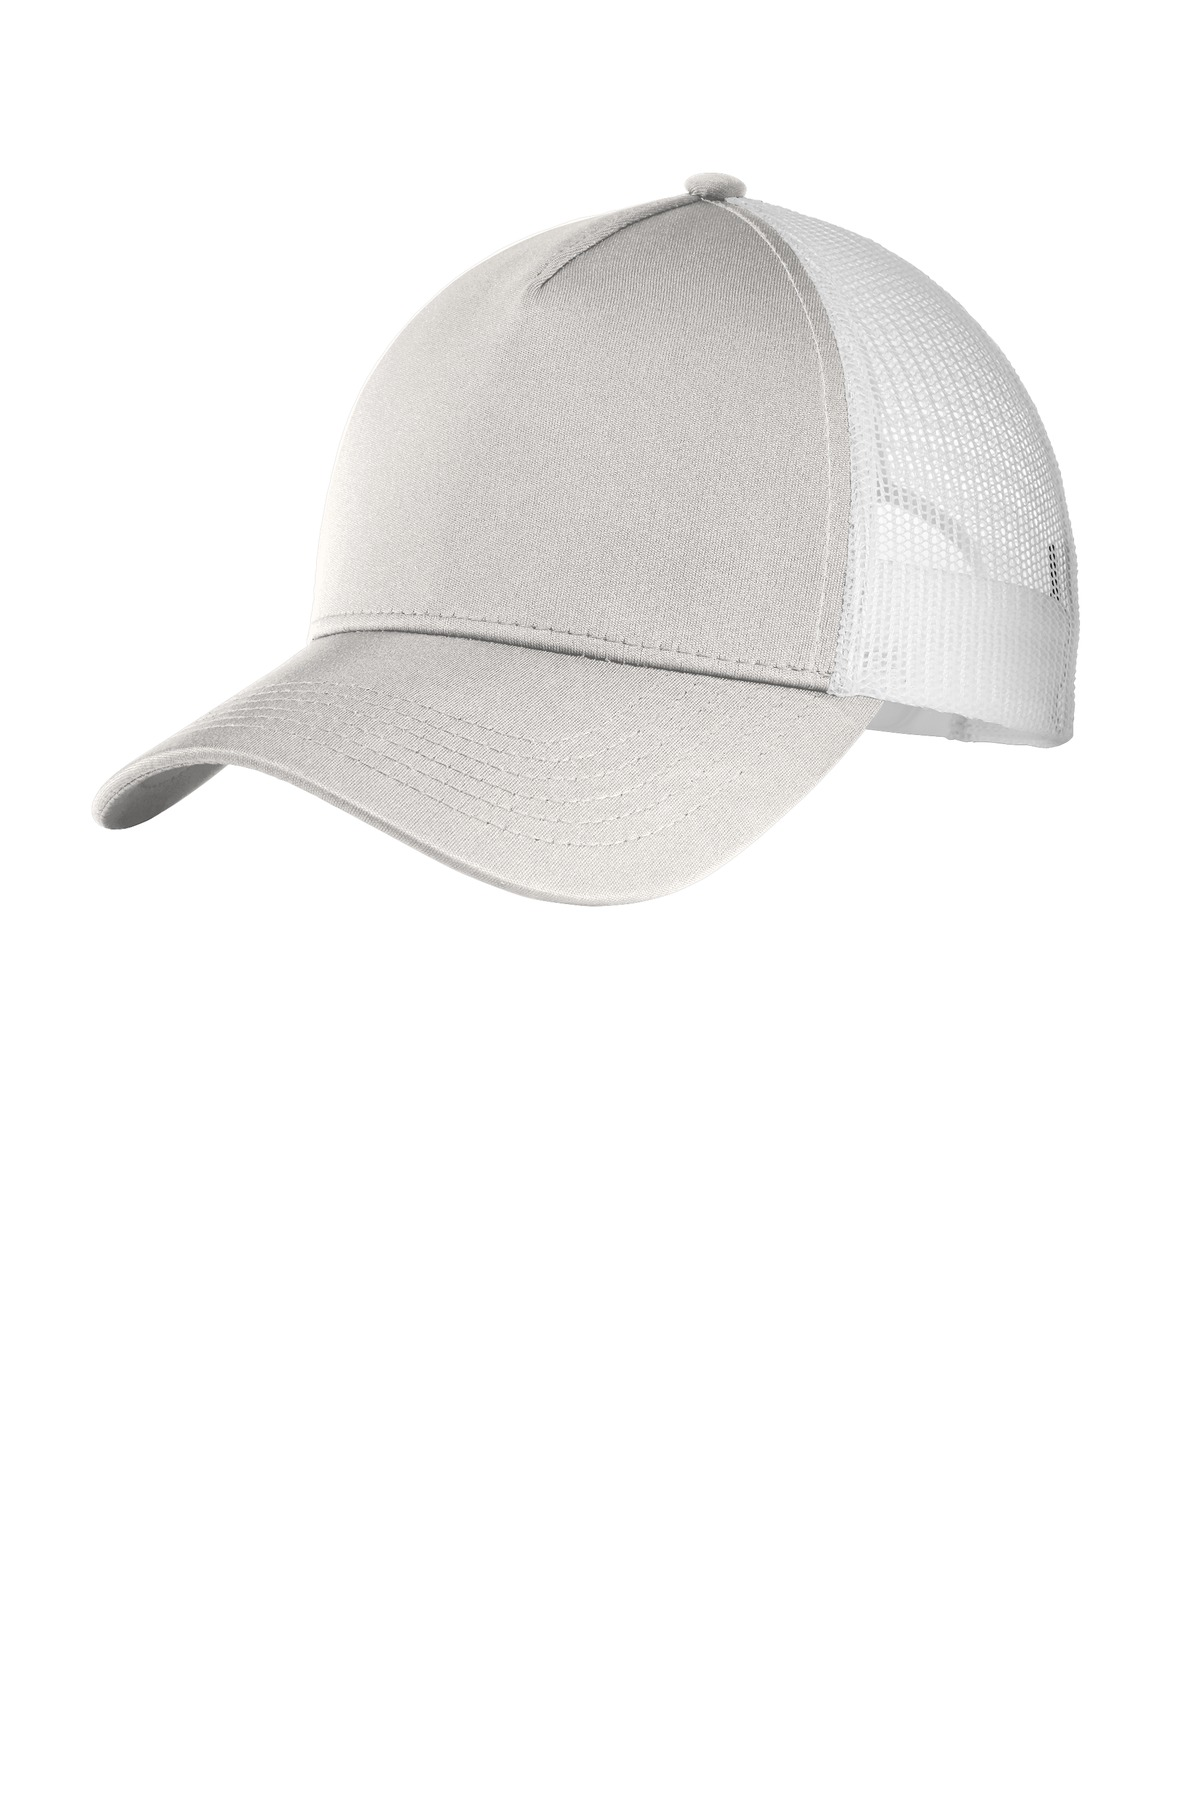 Sport-Tek  ®  PosiCharge  ®  Competitor  ™  Mesh Back Cap. STC36 - Silver/ White